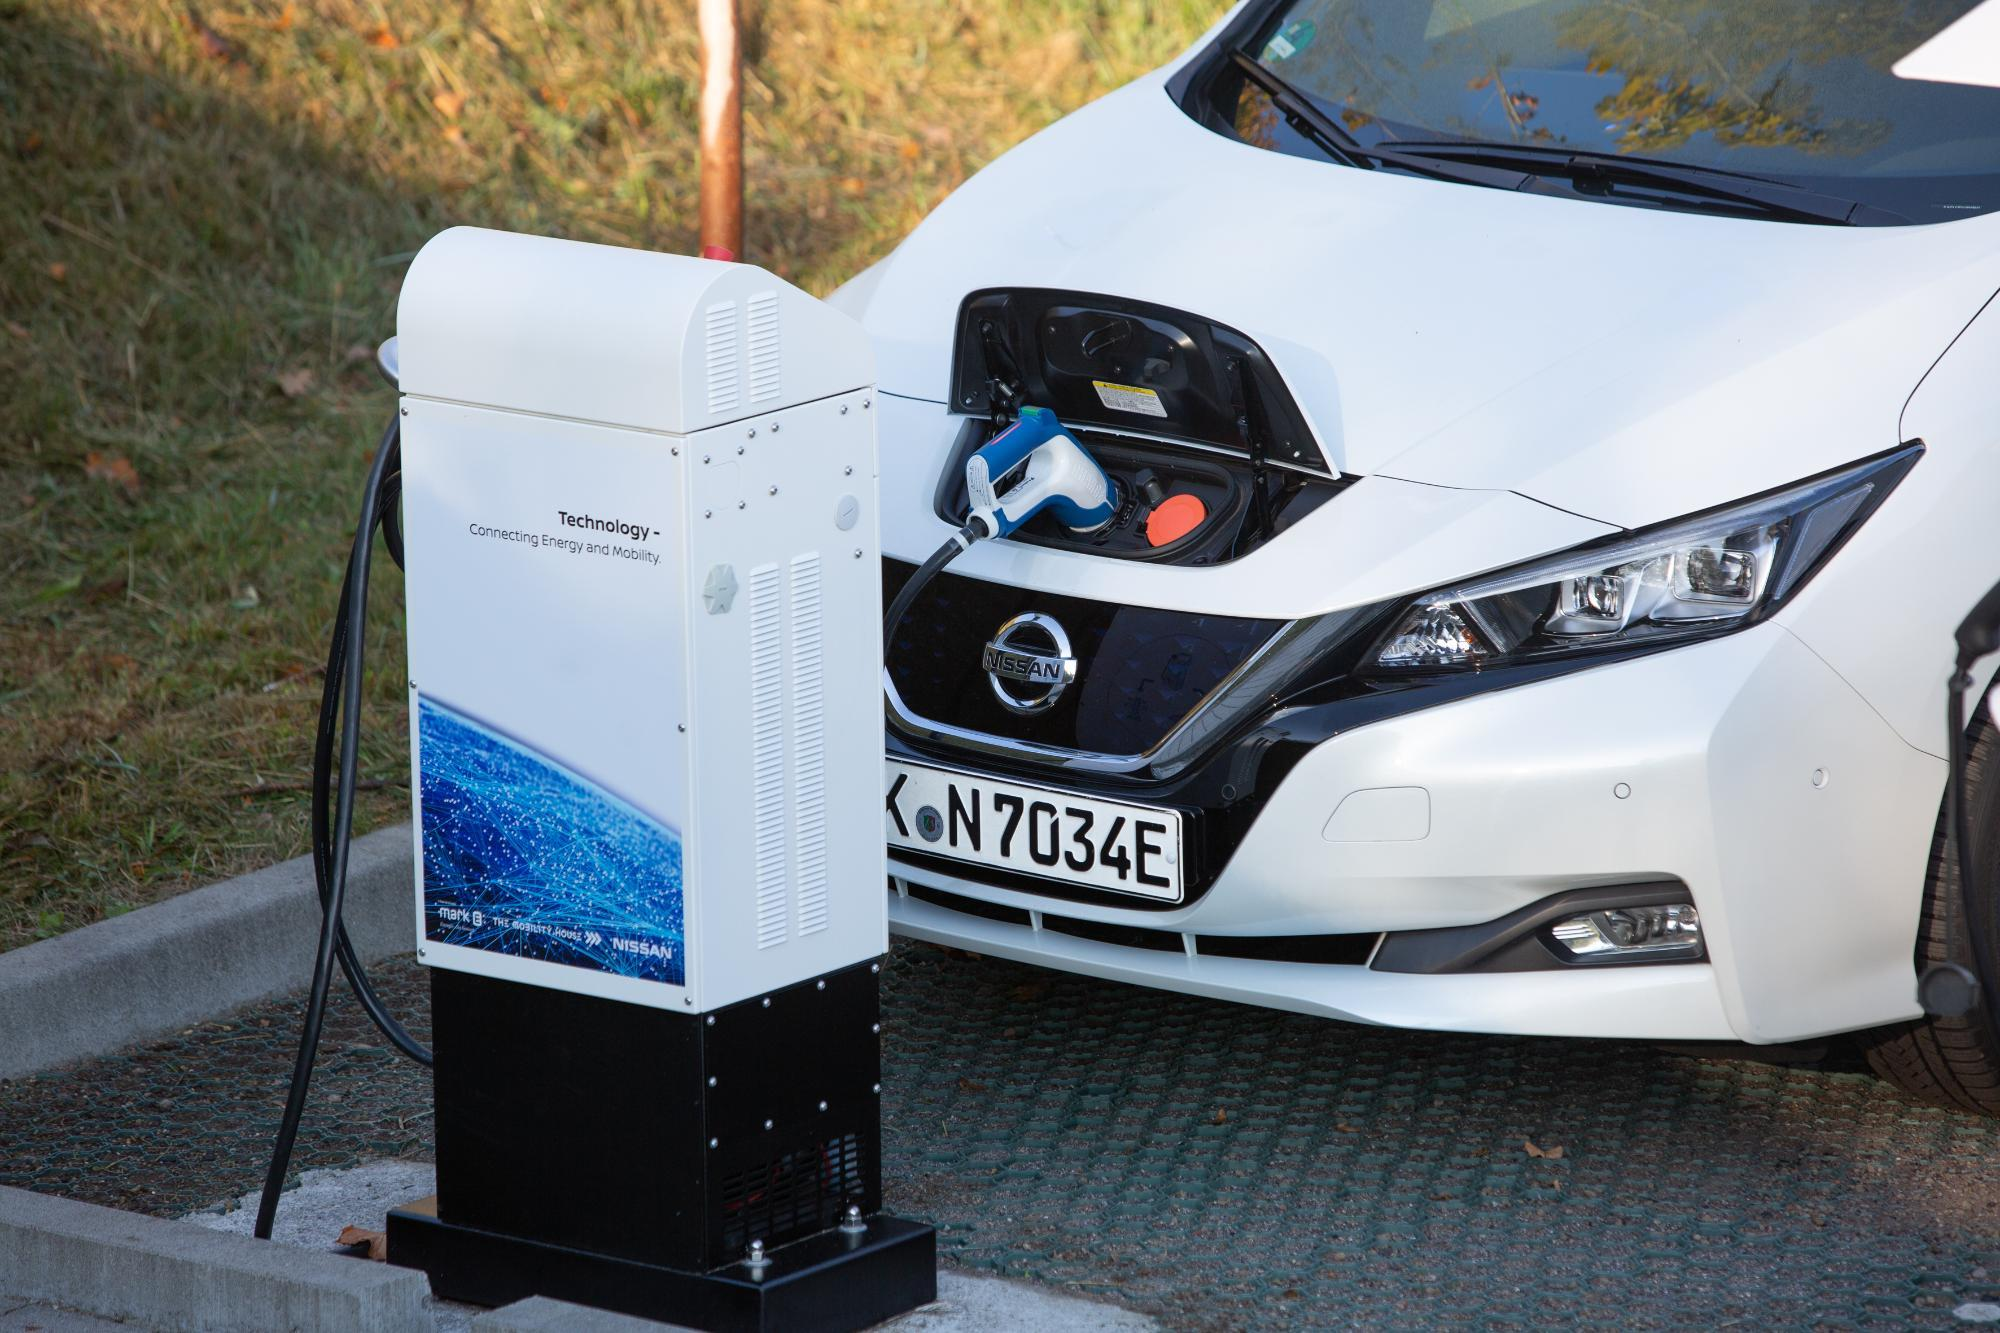 Germany: EIB provides The Mobility House with €15 million for smart charging technology